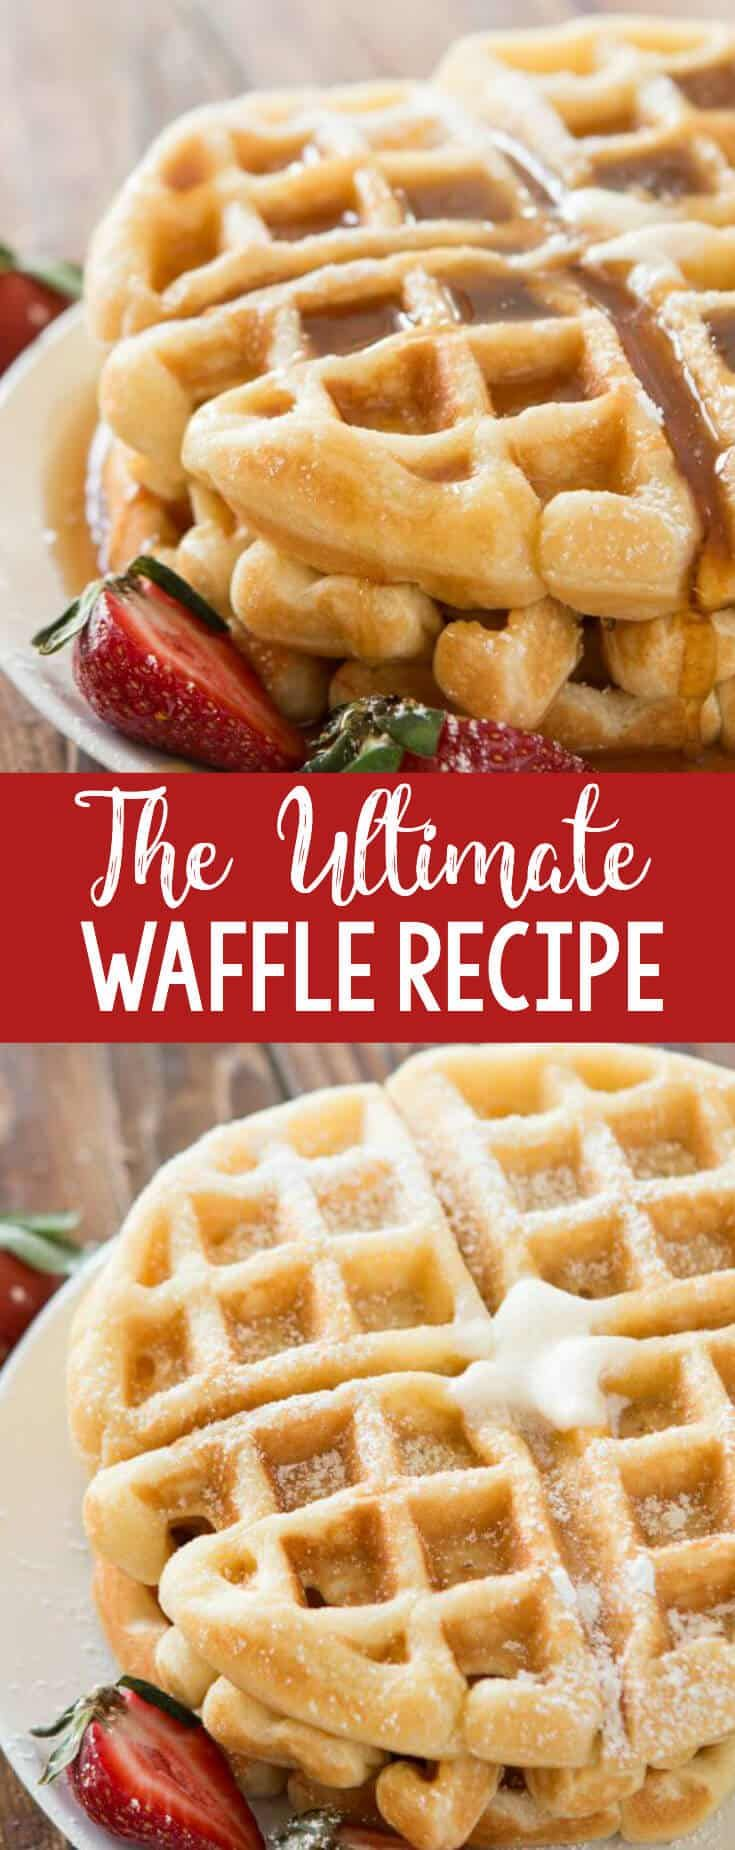 We tested over 100 waffles and this is the best buttermilk recipe out there! The ultimate waffle recipe and it's all thanks to a few simple secrets. OHSWEETBASIL.COM via @ohsweetbasil